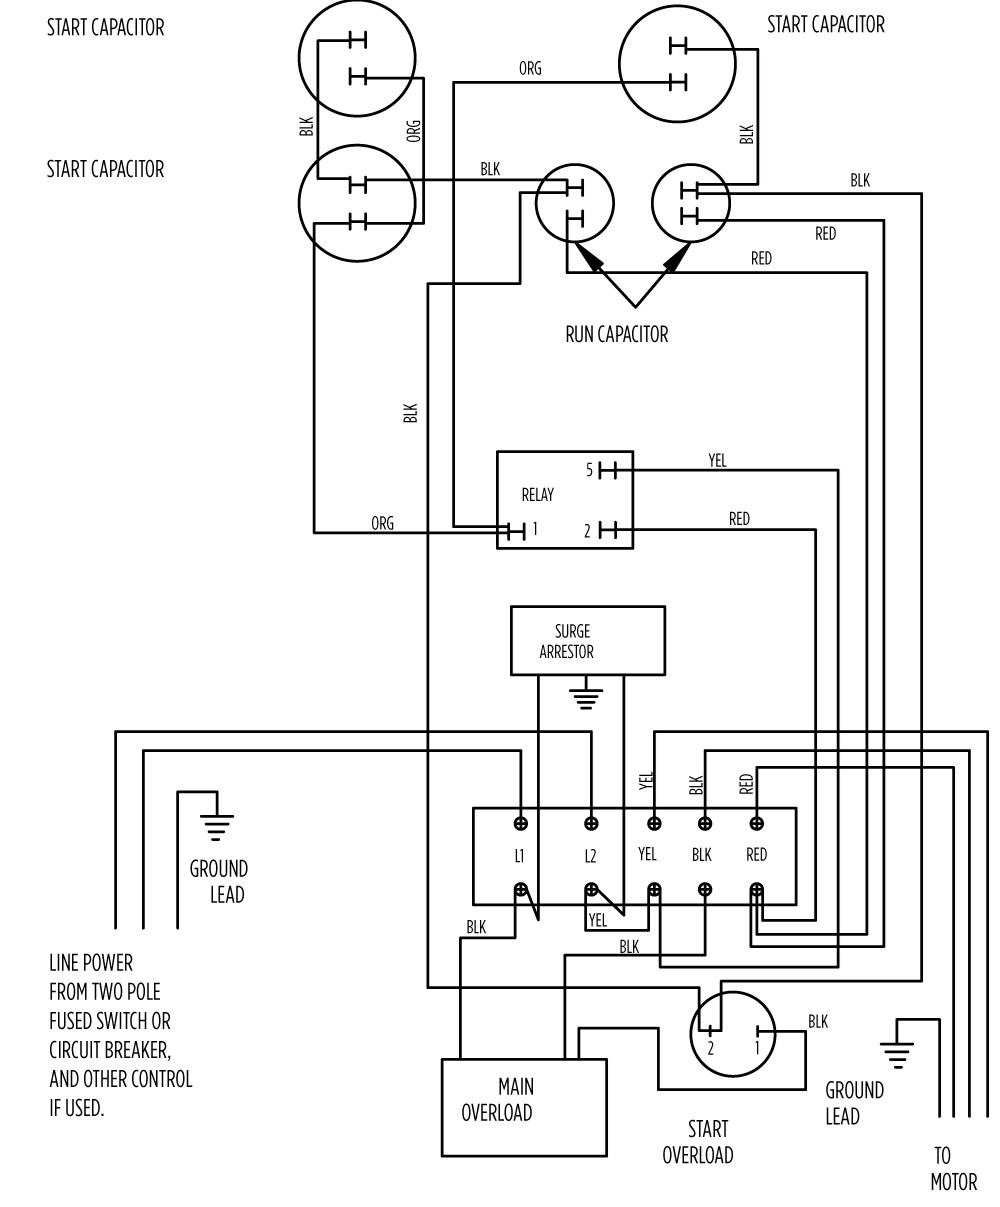 small resolution of franklin electric motor wiring diagram wiring diagram mega franklin motor wiring diagram wiring diagram show franklin